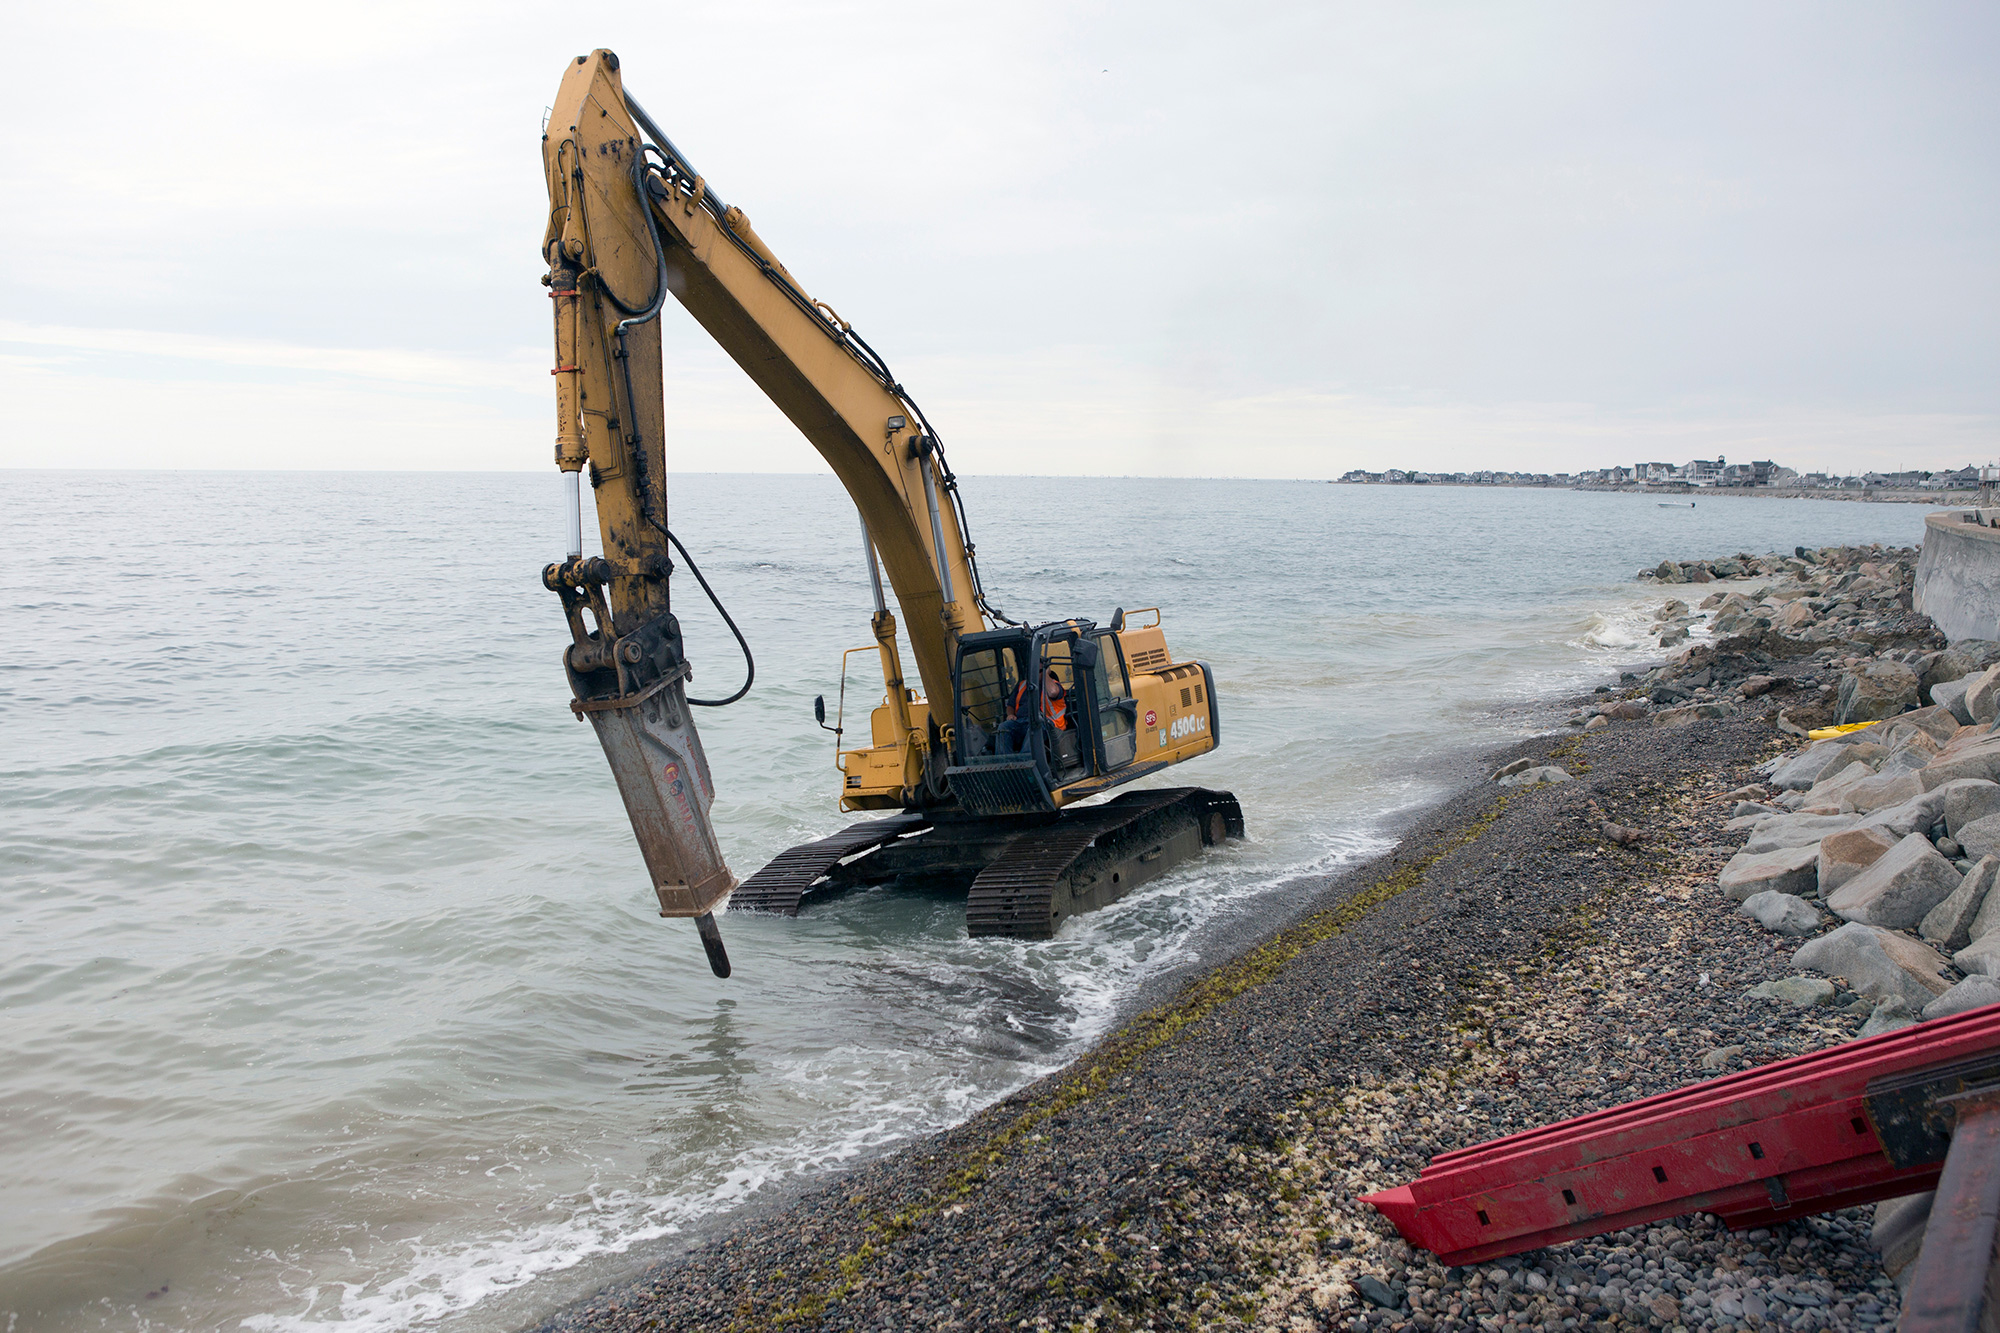 A wheel excavator travels up the rocky shore south of Egypt Beach in Scituate as construction workers rebuild a damaged seawall, originally built in the 1930s. The crew is increasing its height and strength with additional steel support and rocks. (Photo by Lauren Owens Lambert/GroundTruth)